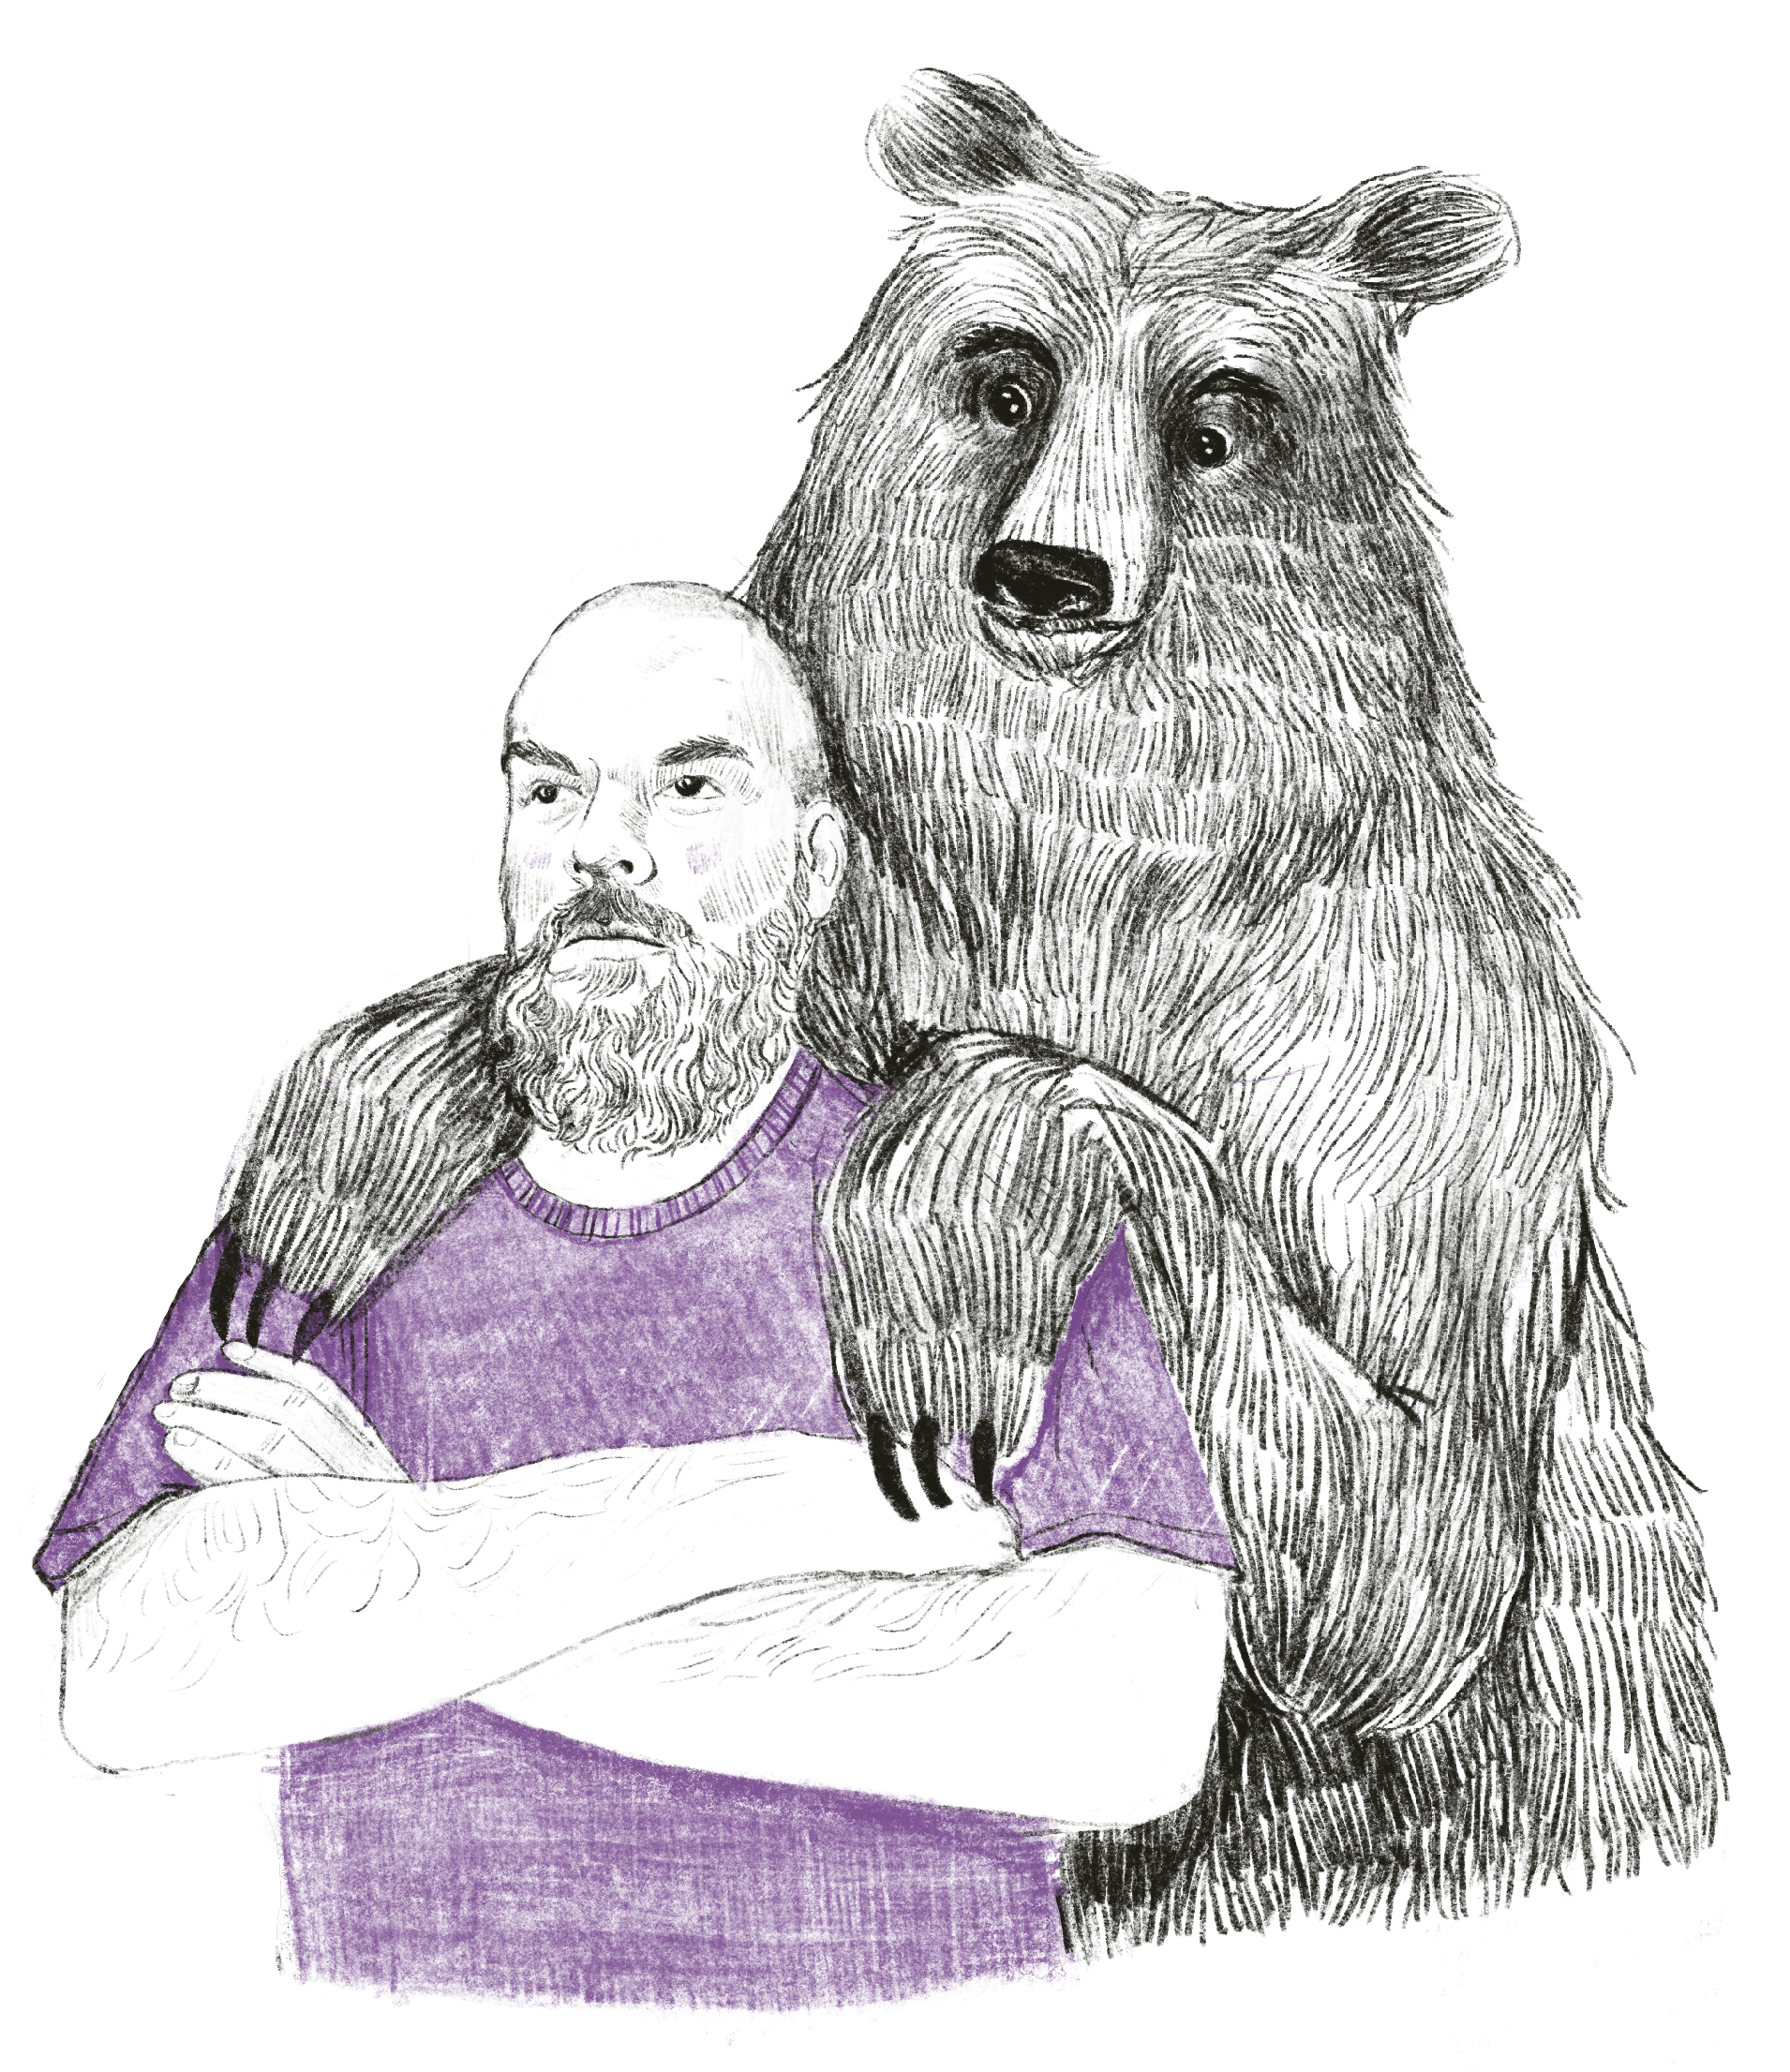 A man and a bear. Fat and handsome. Jeremy Hamman wears purple.